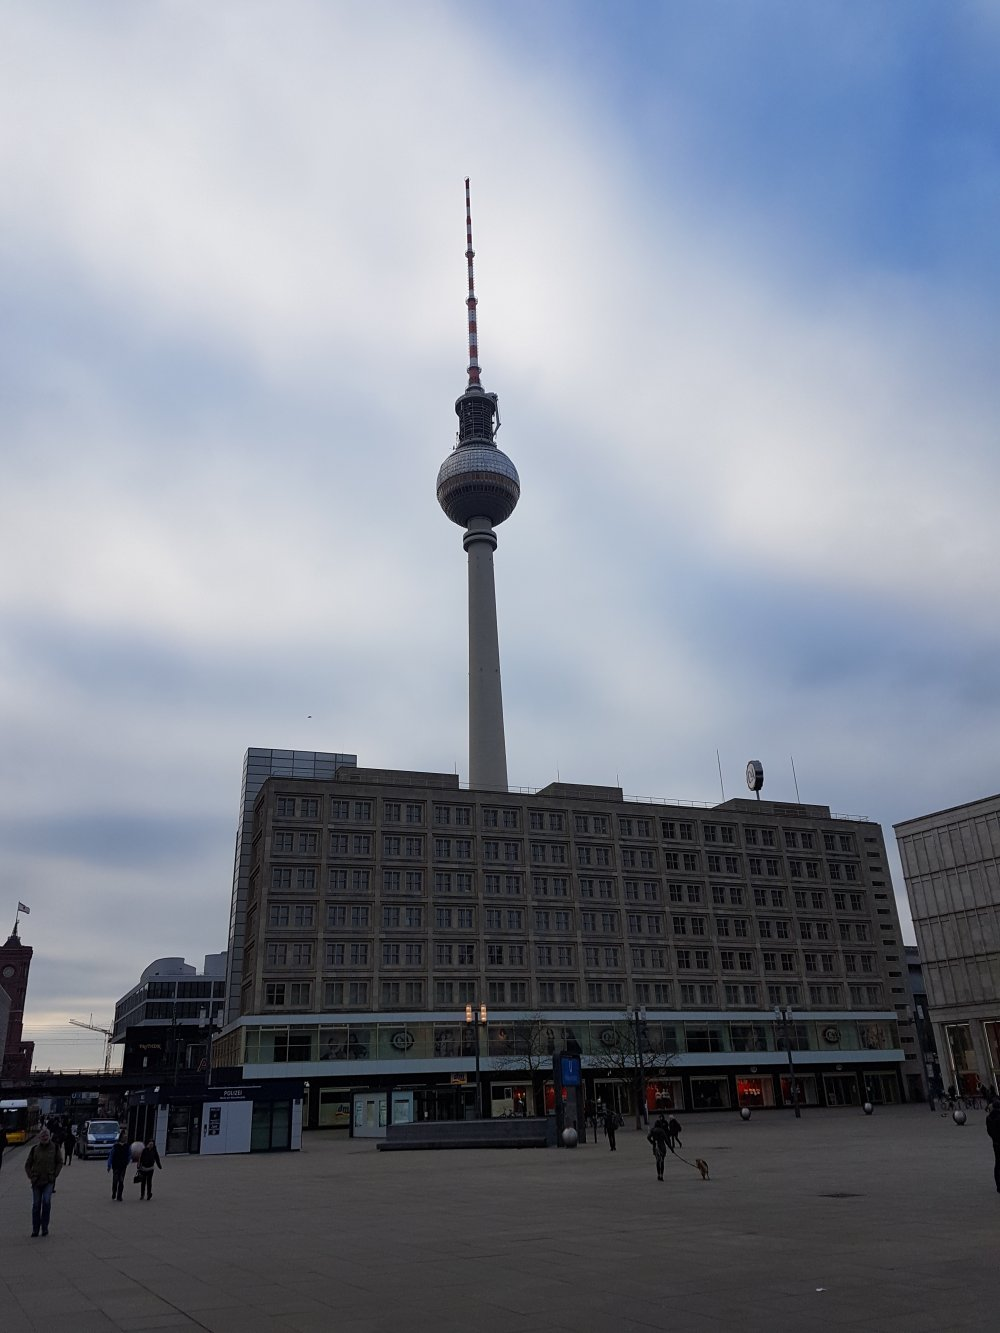 The iconic Berlin TV Tower